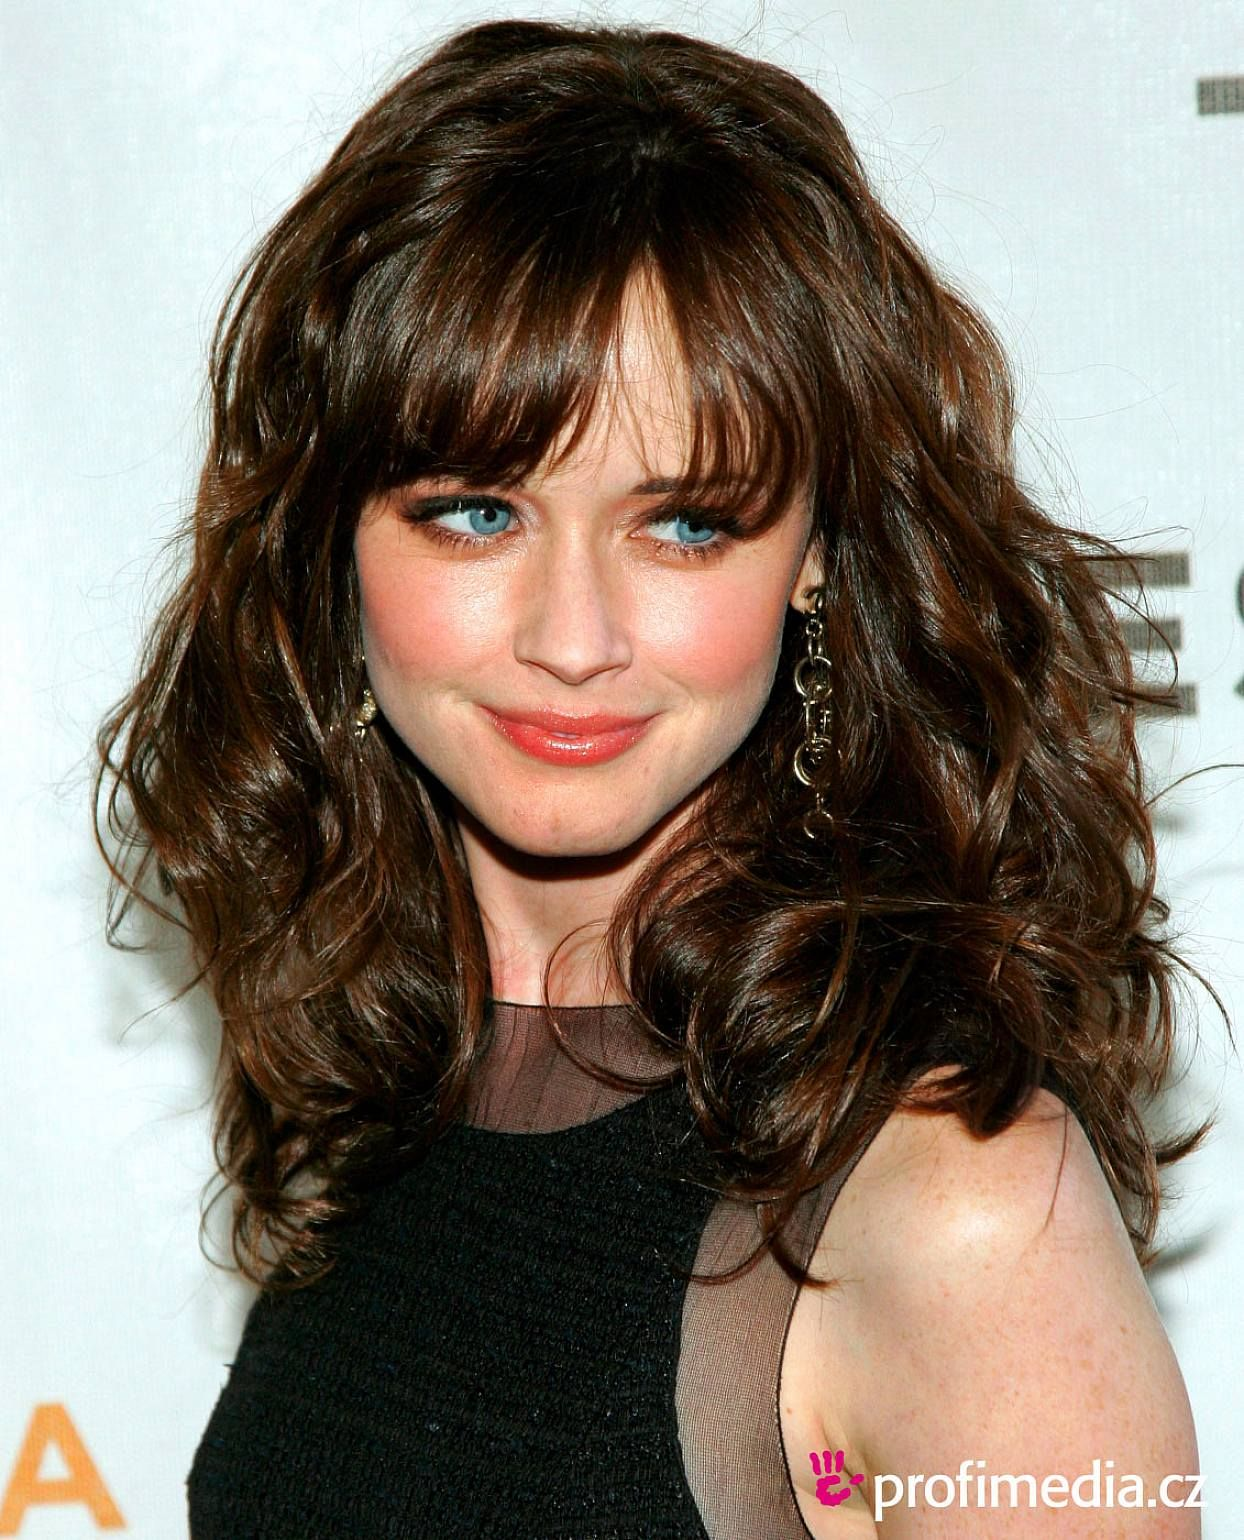 Cute hairstyles for curly hair - 30 Cute Styles Featuring Curly Hair With Bangs